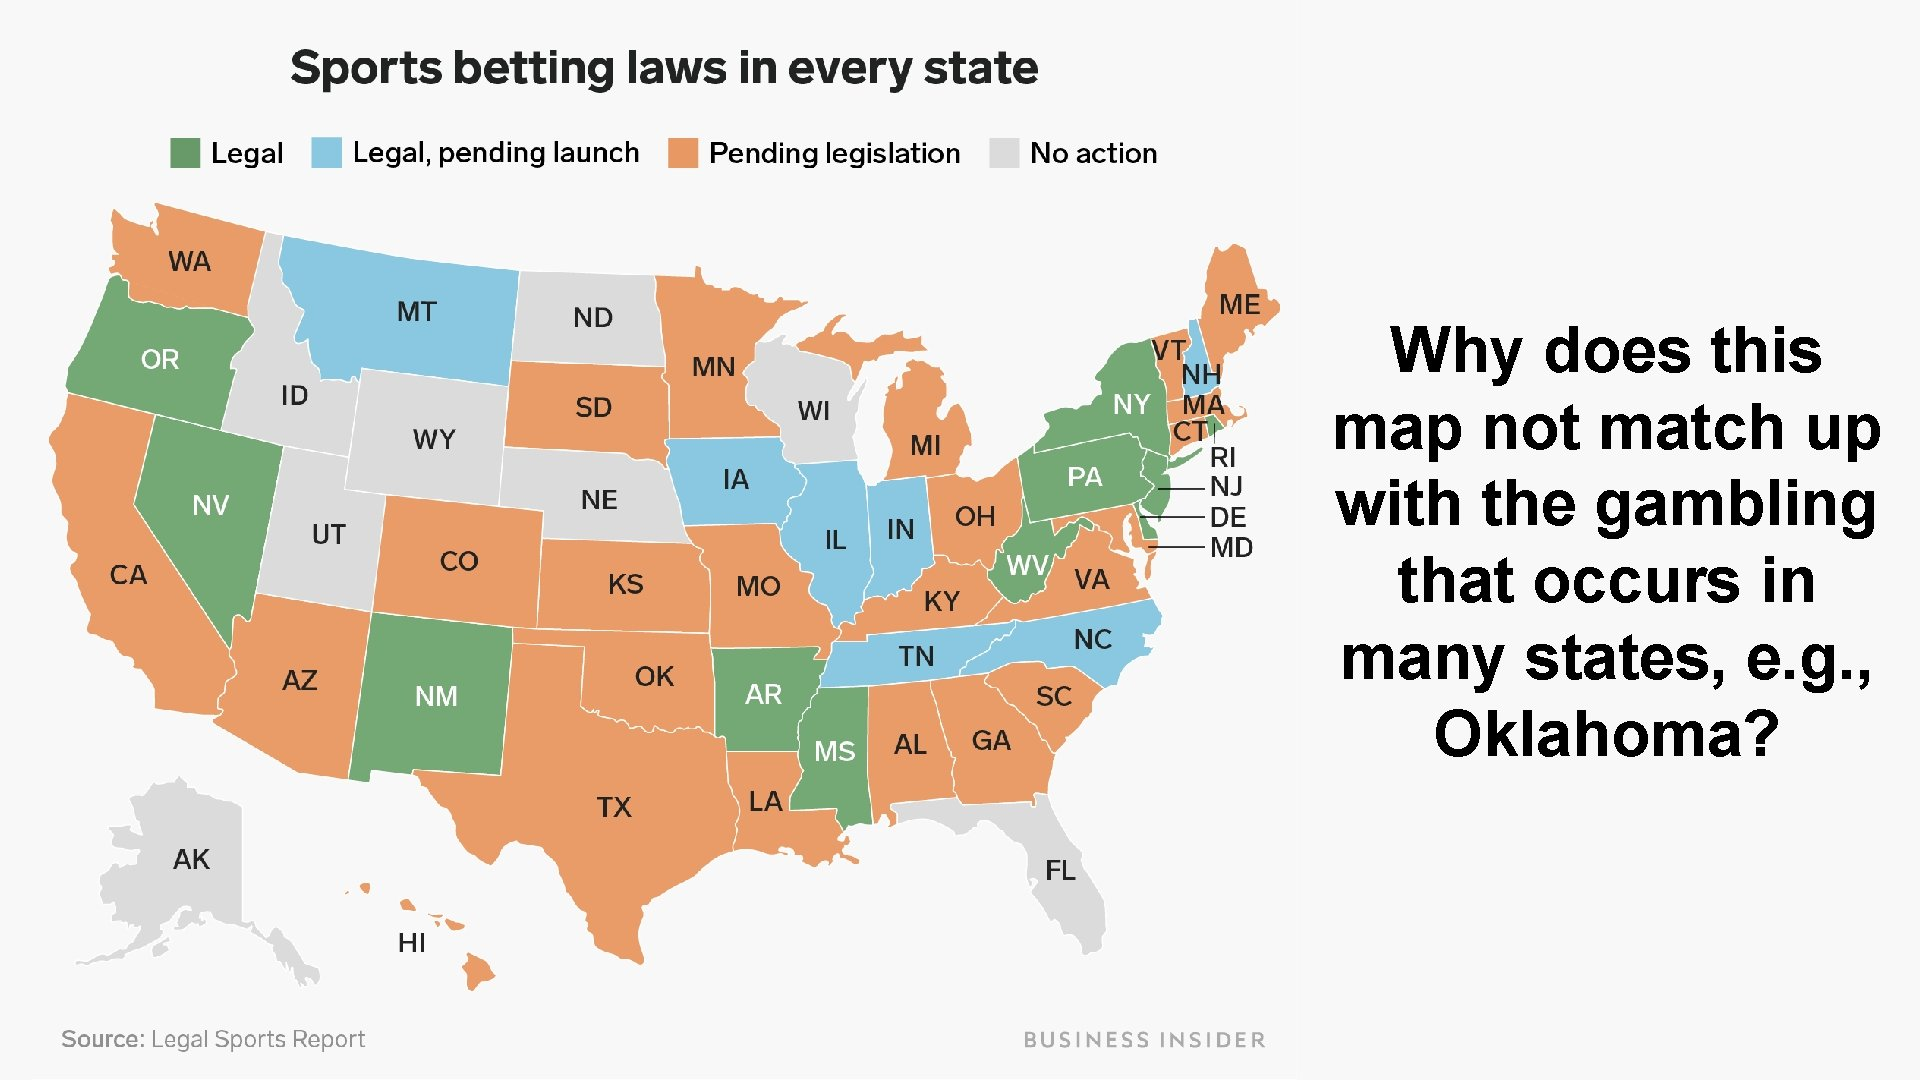 Why does this map not match up with the gambling that occurs in many